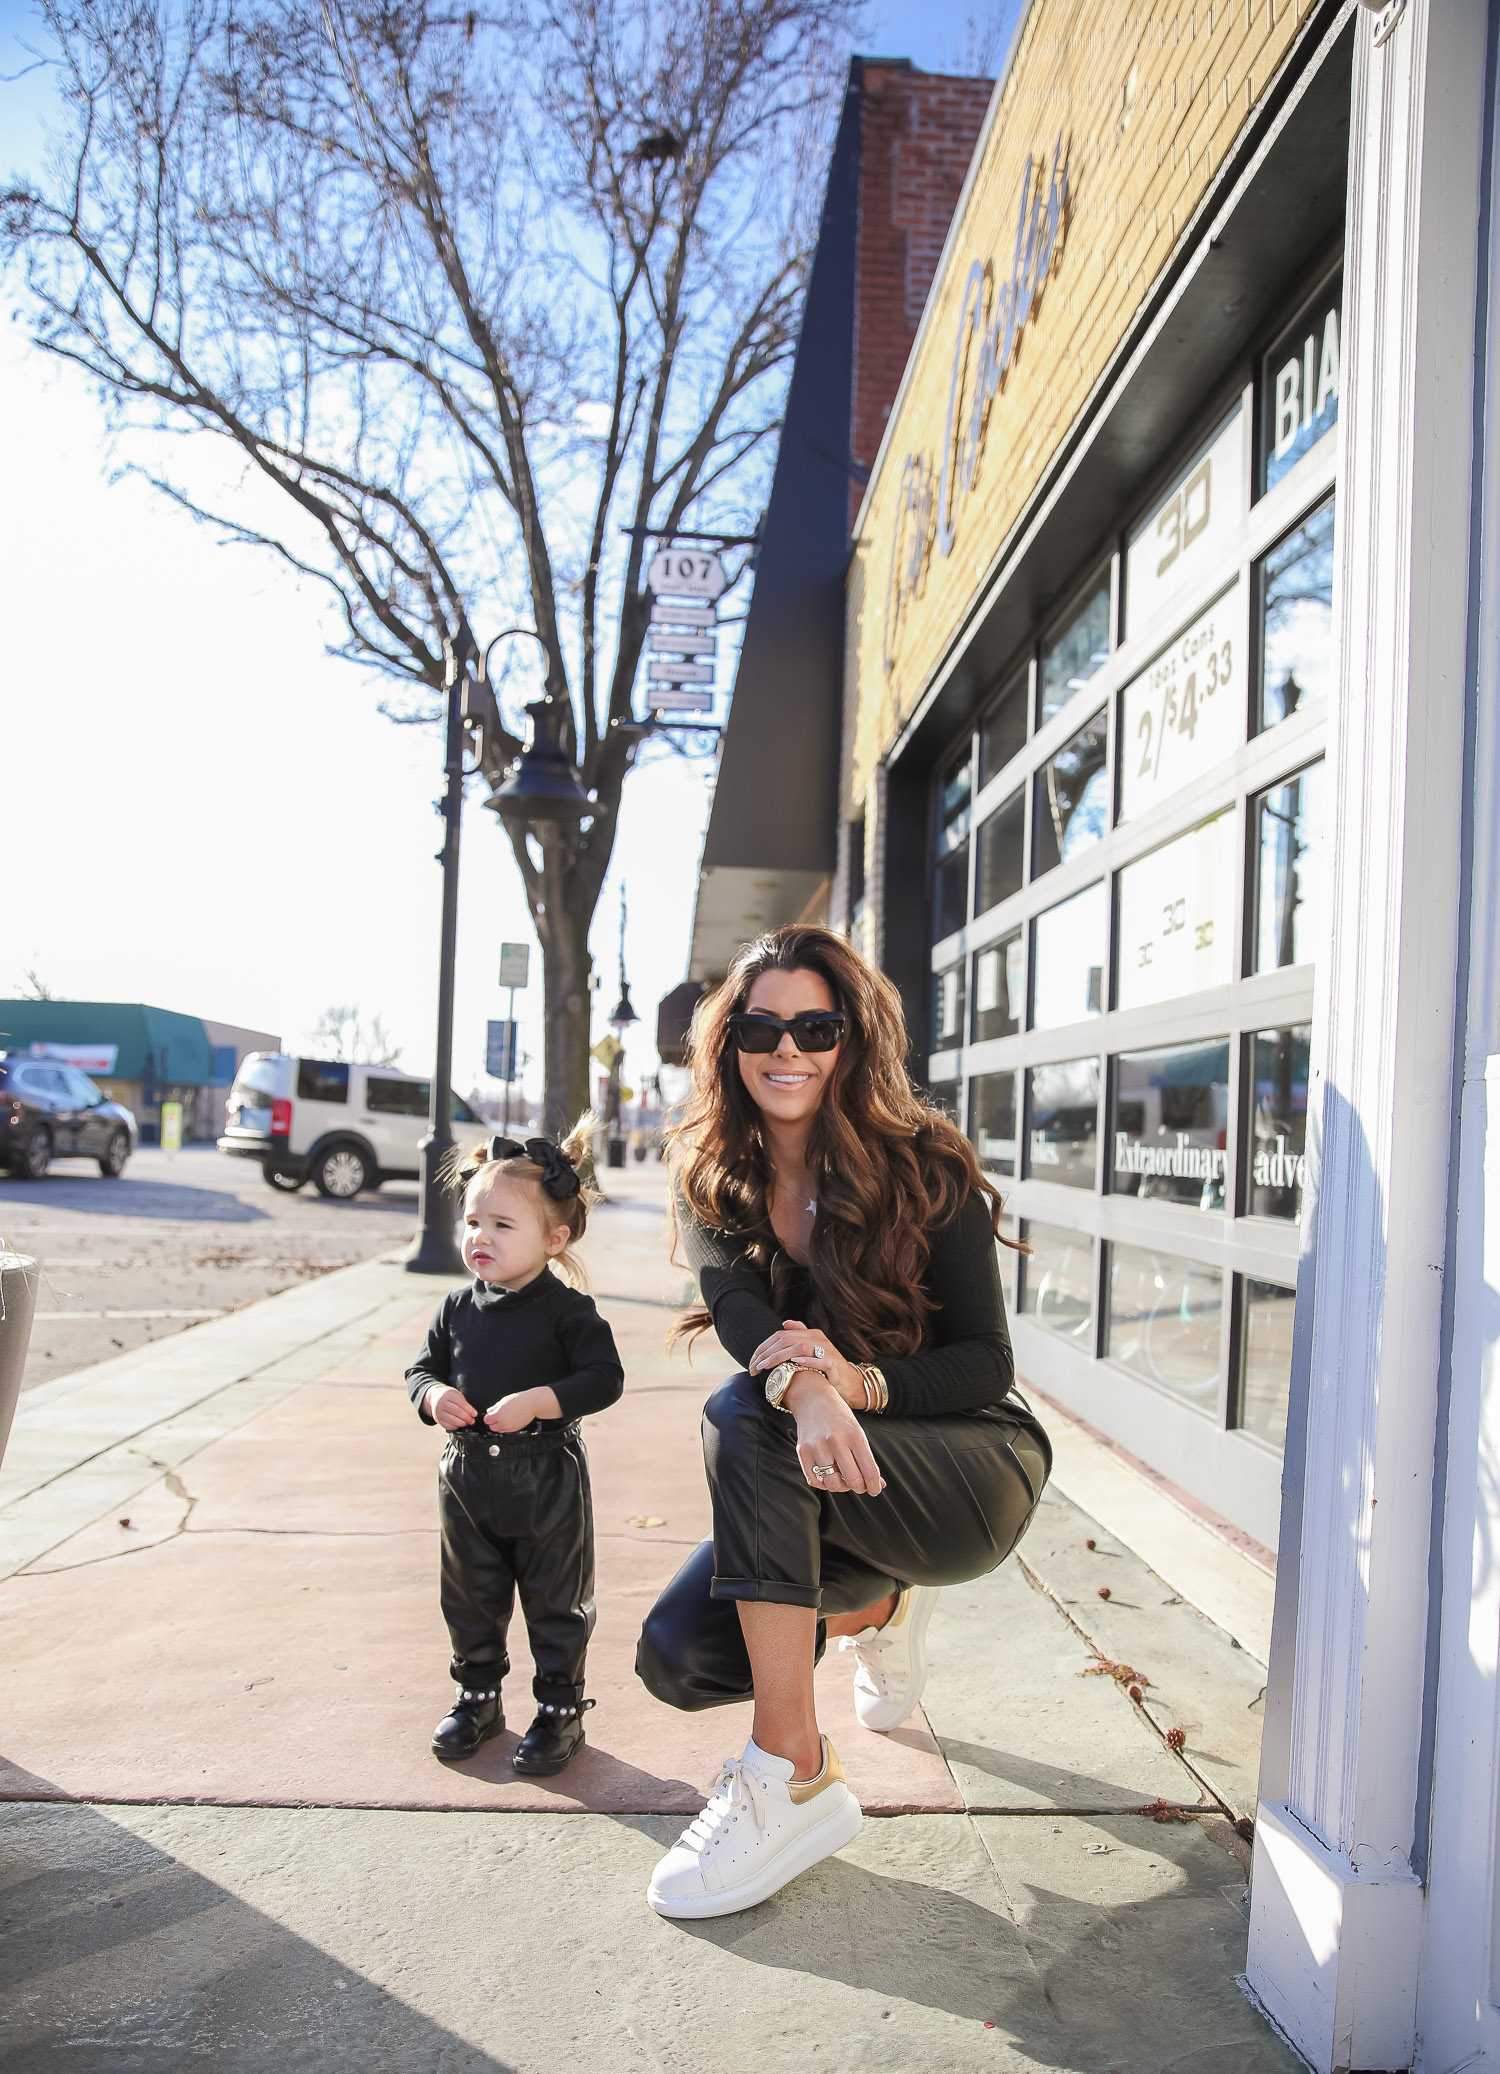 Nordstrom BP faux leather pants, loewe sunglasses, Alexander mcqueen sneakers gold white outfit pinterest, matching mommy daughter fashion, emily gemma |Mommy and Daughter by popular US fashion blog, The Sweetest Thing: image of a woman and her daughter walking together outside and wearing a pair of BP faux leather pants, Good American top, loewe sunglasses, Alexander mcqueen sneakers, Monica Vinader ring, Nadri bracelet, Nadri earrings, and Rolex watch.